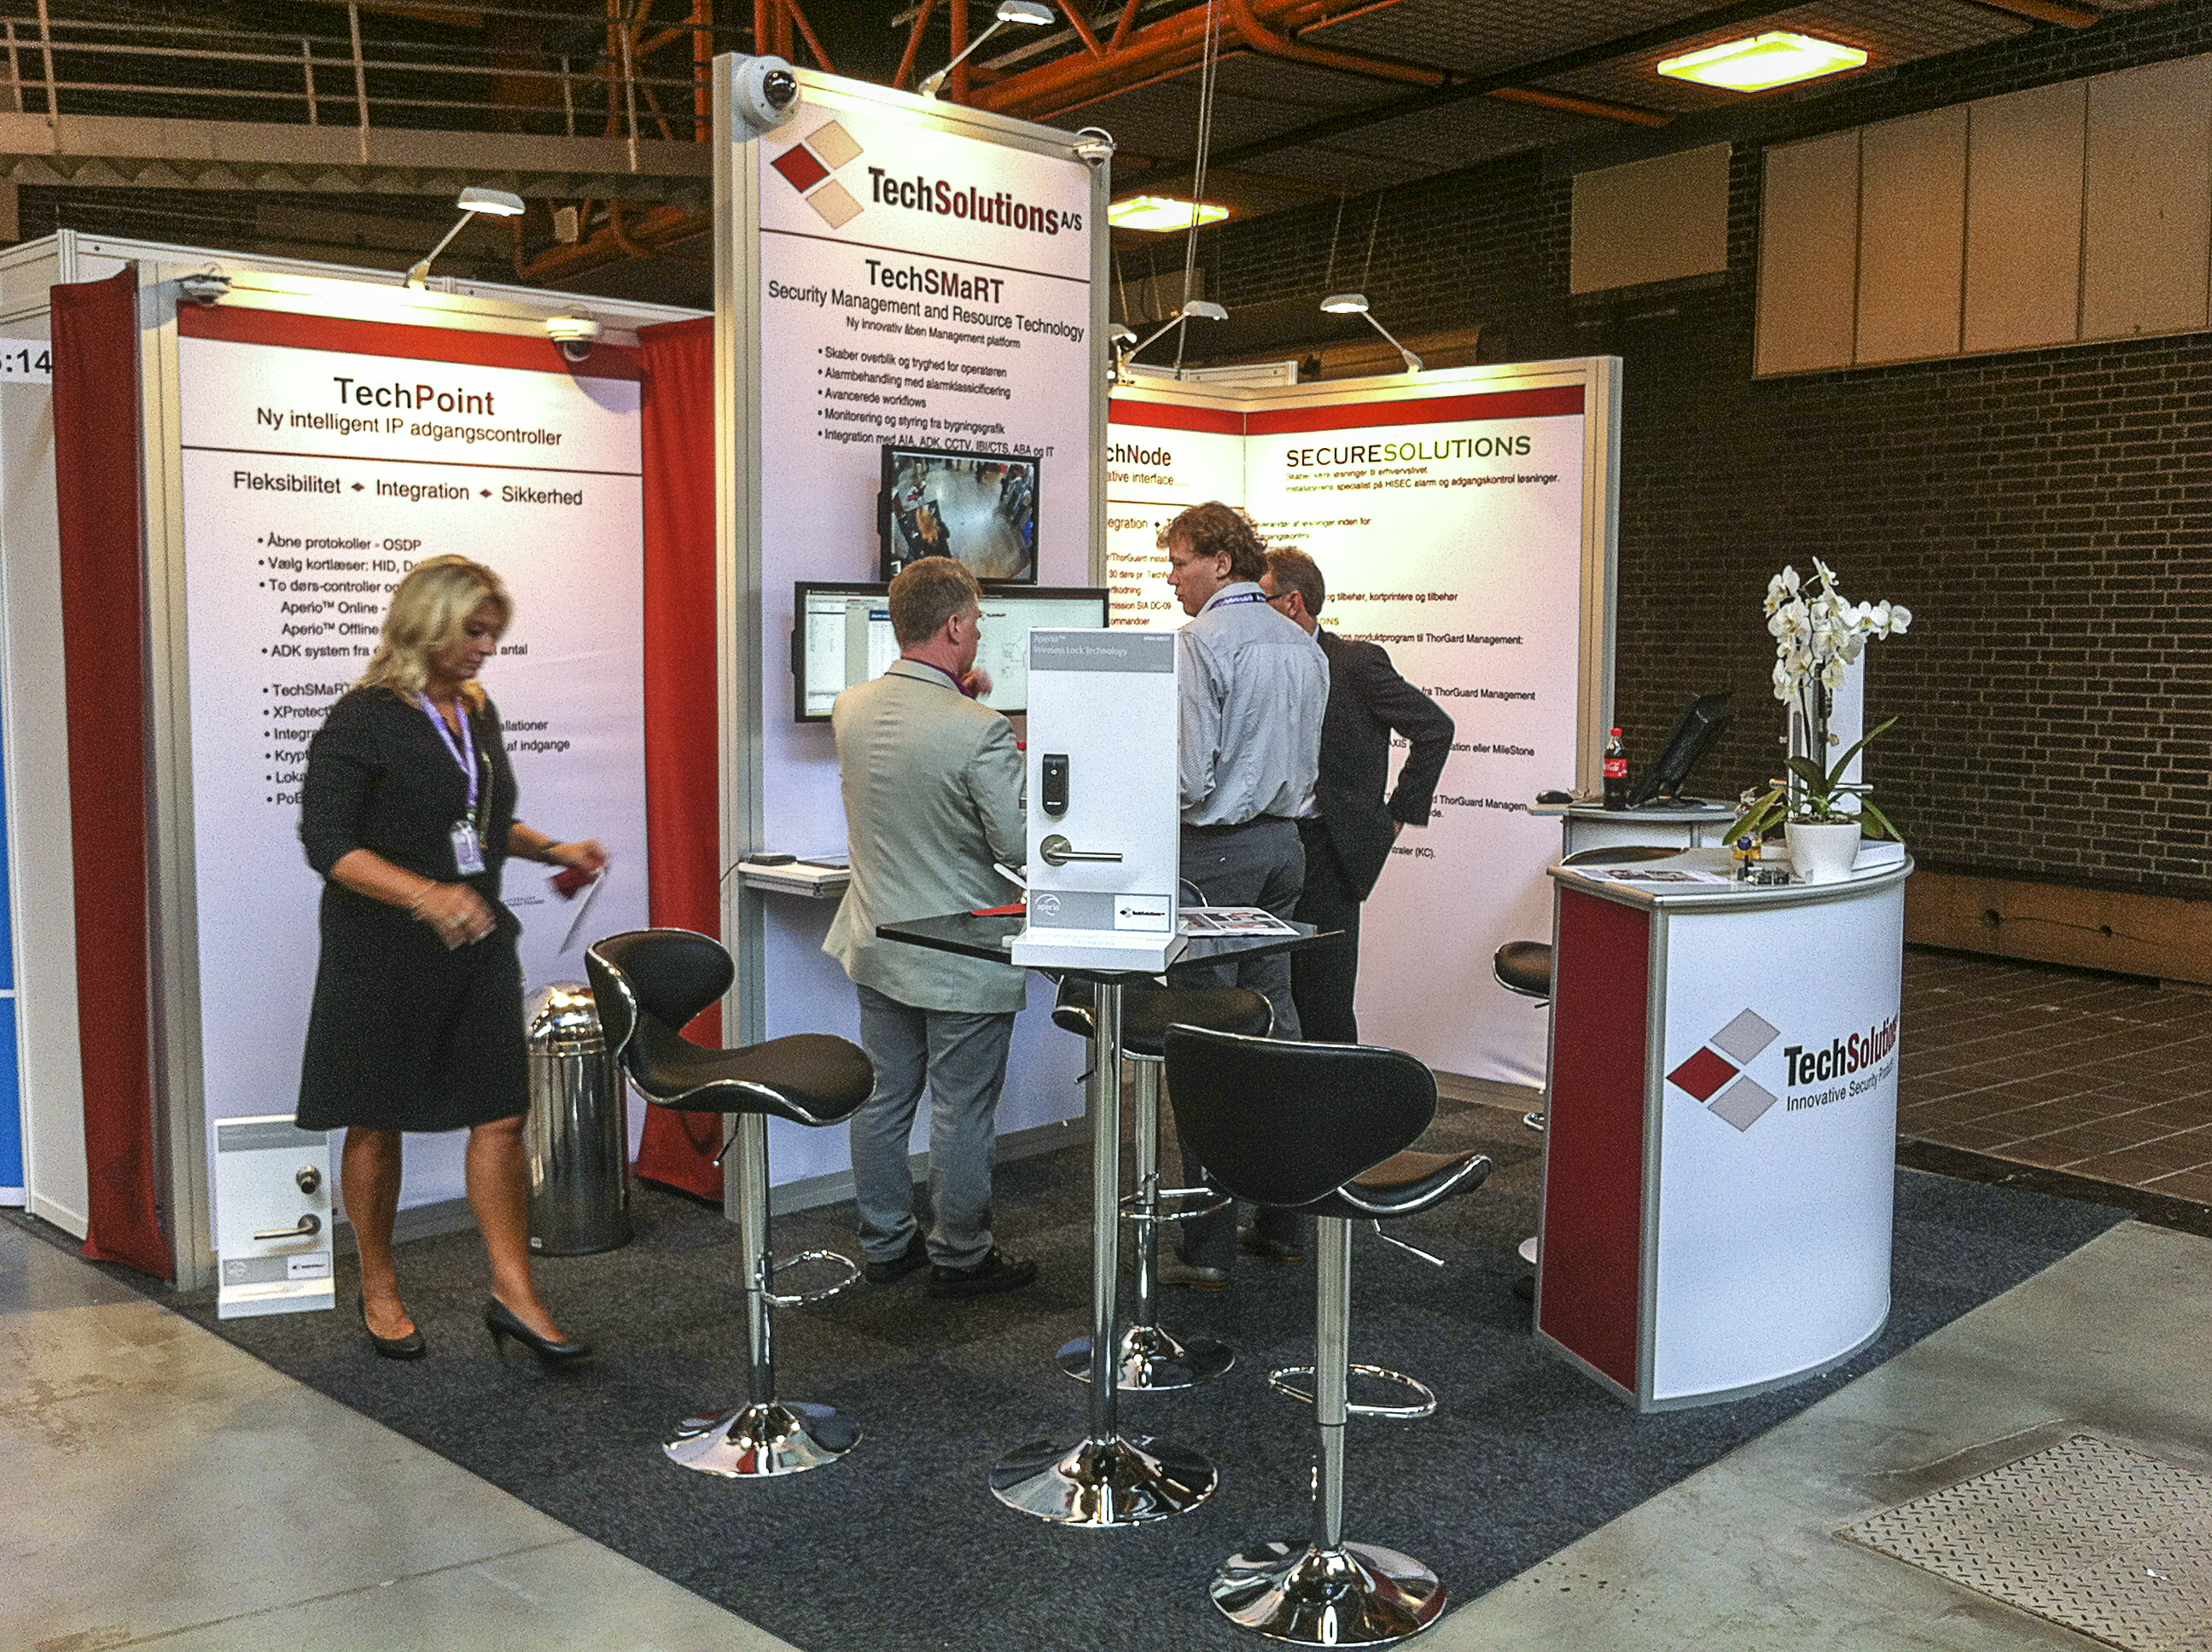 TechSolutions at SecurityUser Expo2013